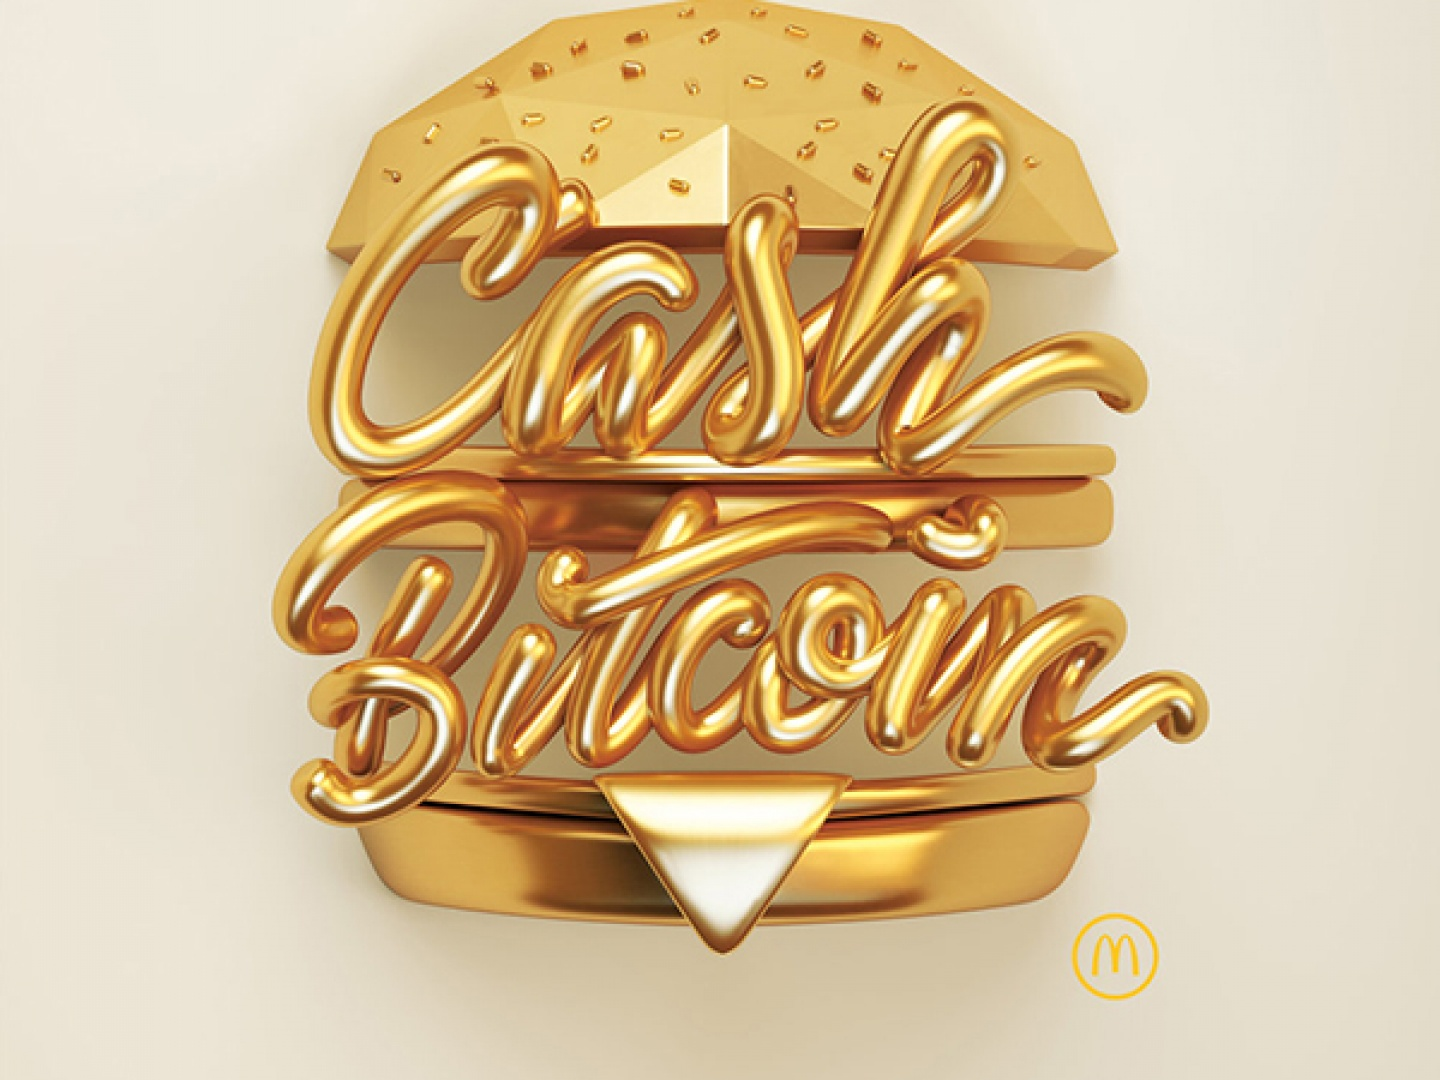 Image for Cash / Bitcoin